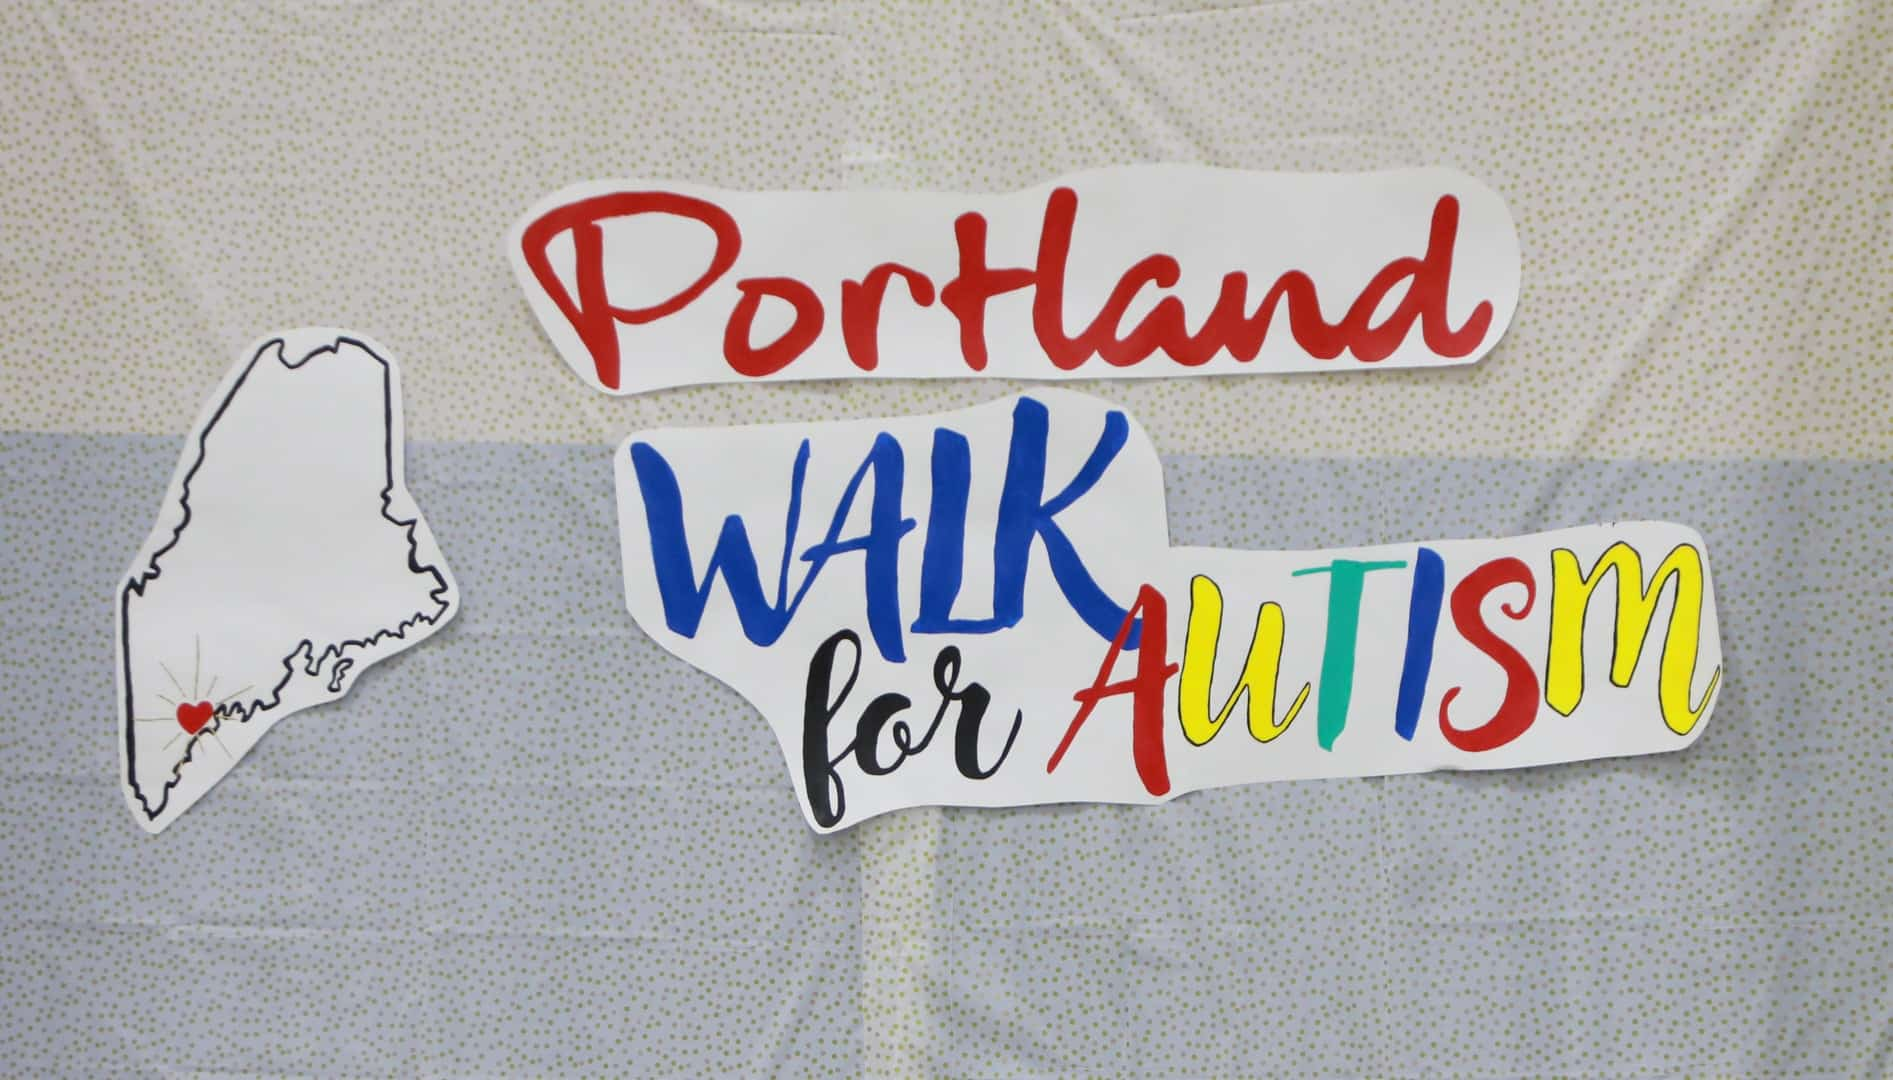 Autism Walk, Portland Maine, walk for autism